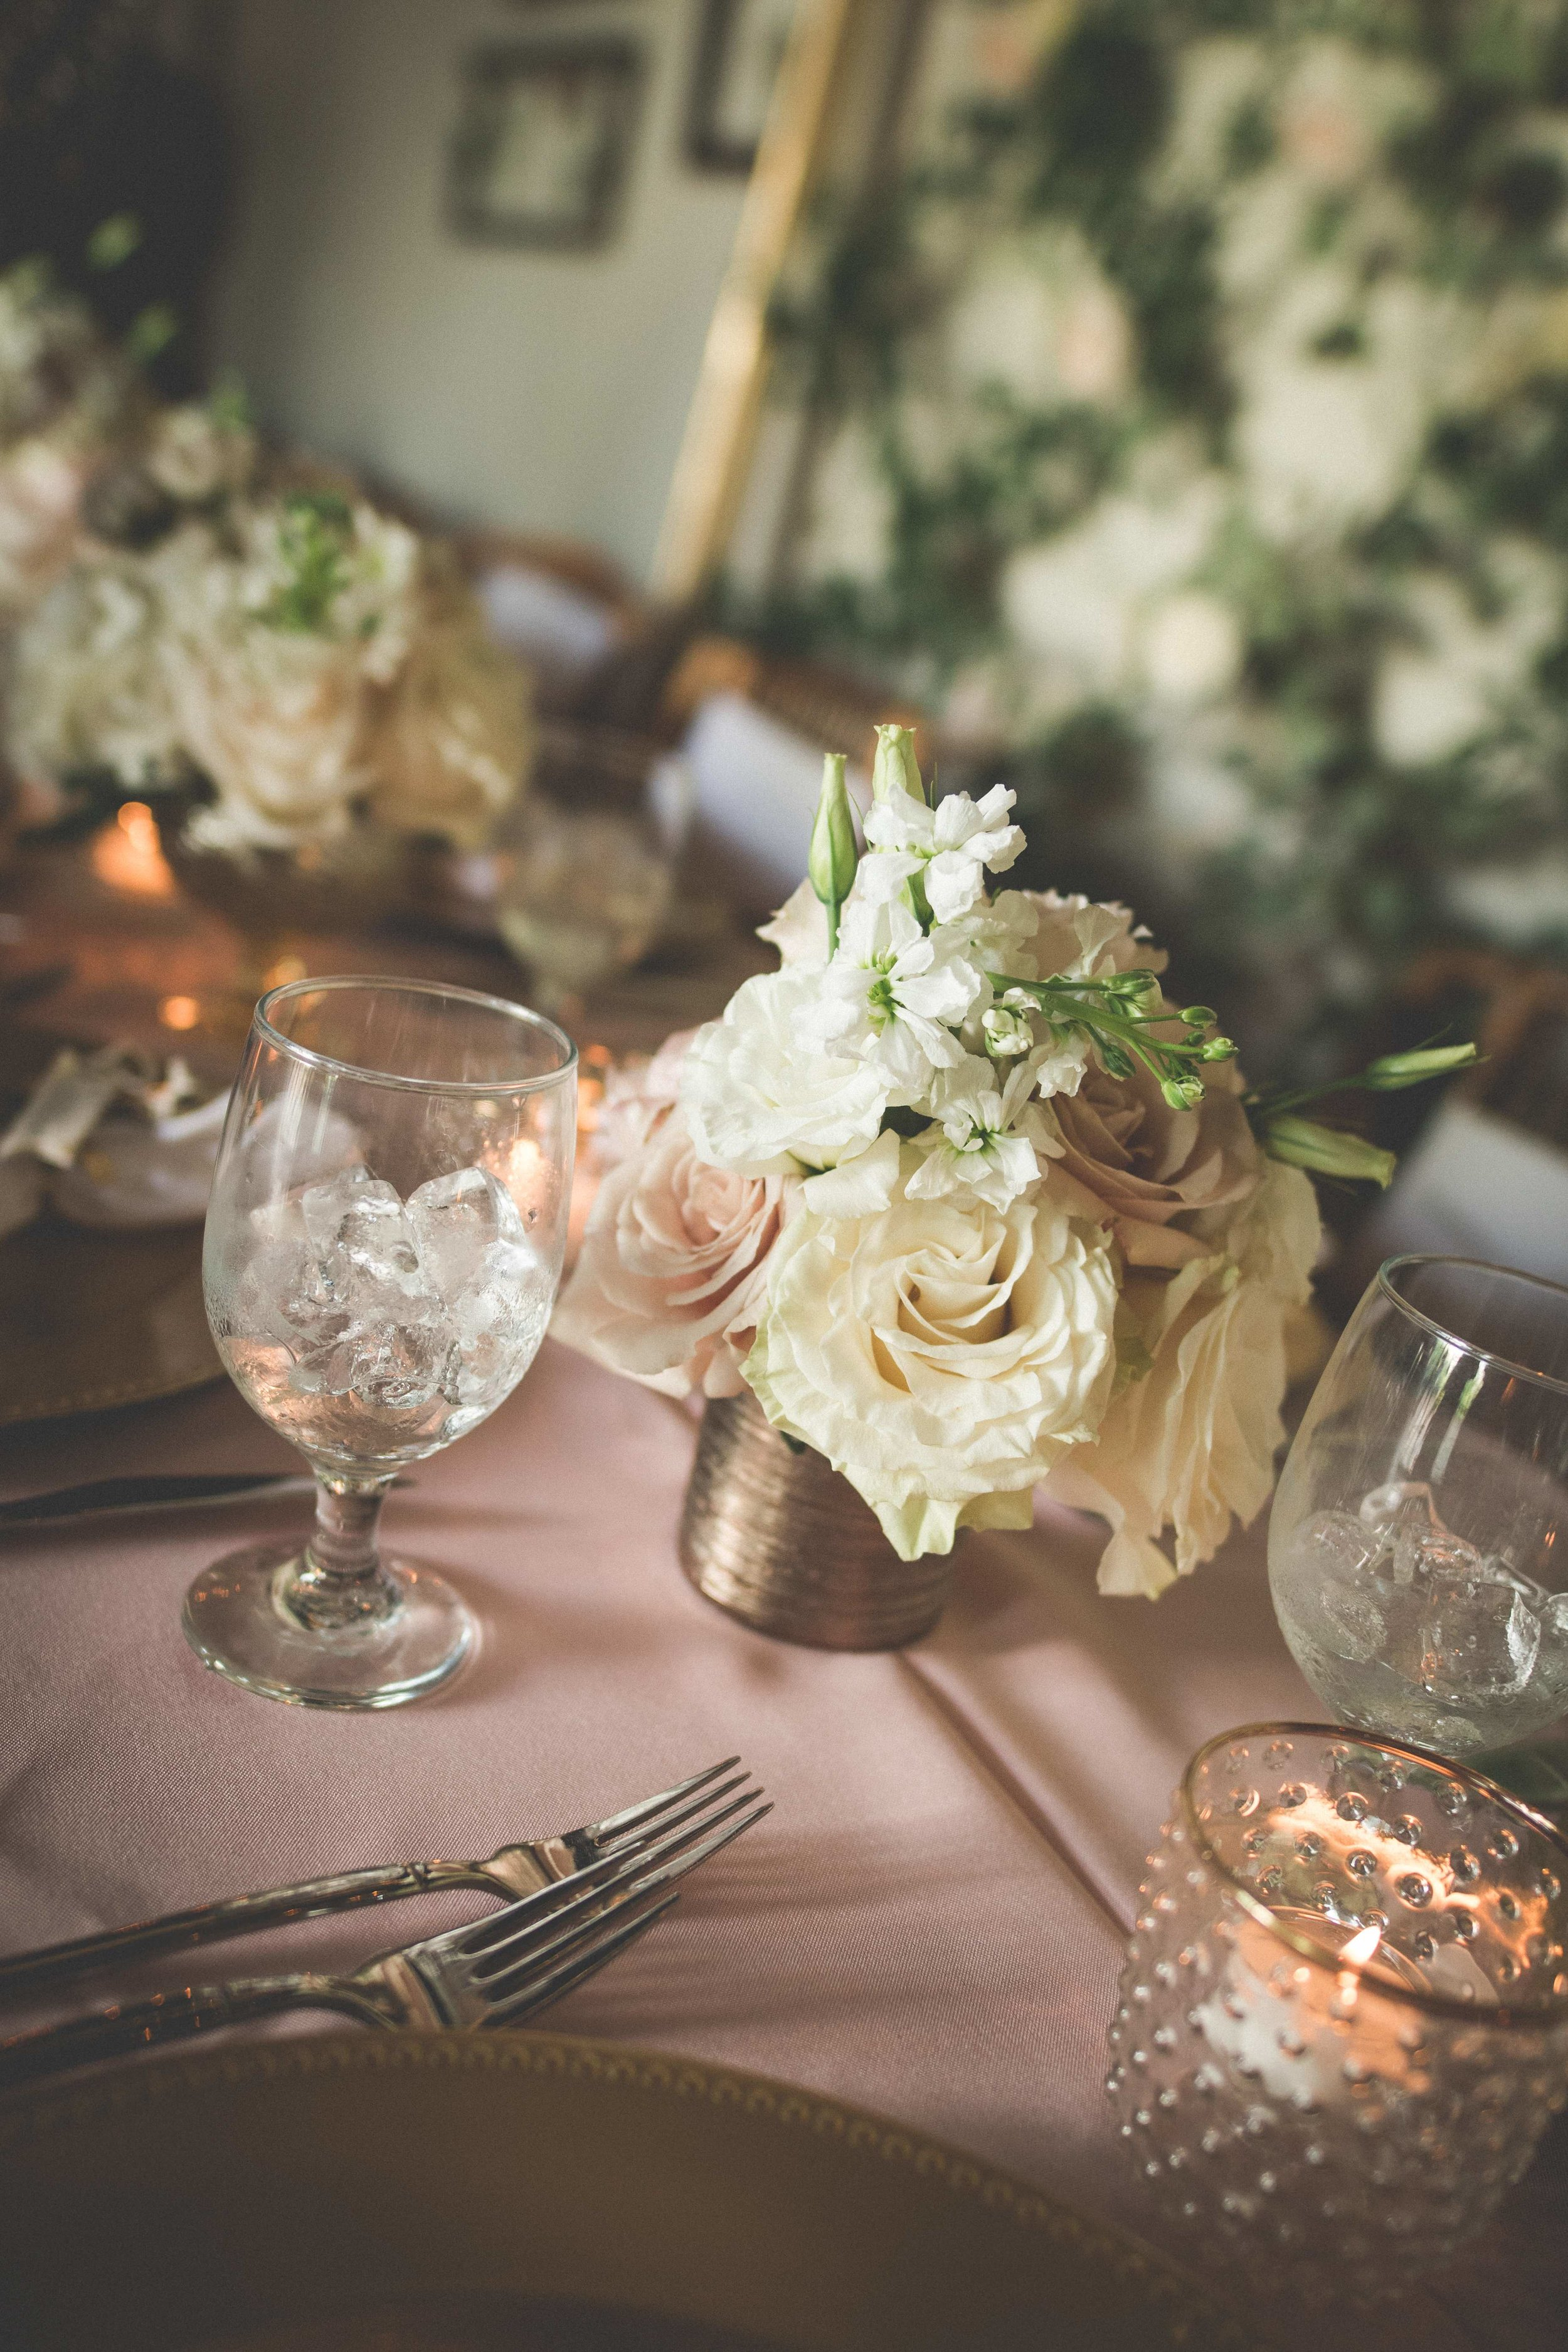 Gold and rose gold details were displayed amongst blush linens, soft candlelight, and bouquets of ivory and blush florals.